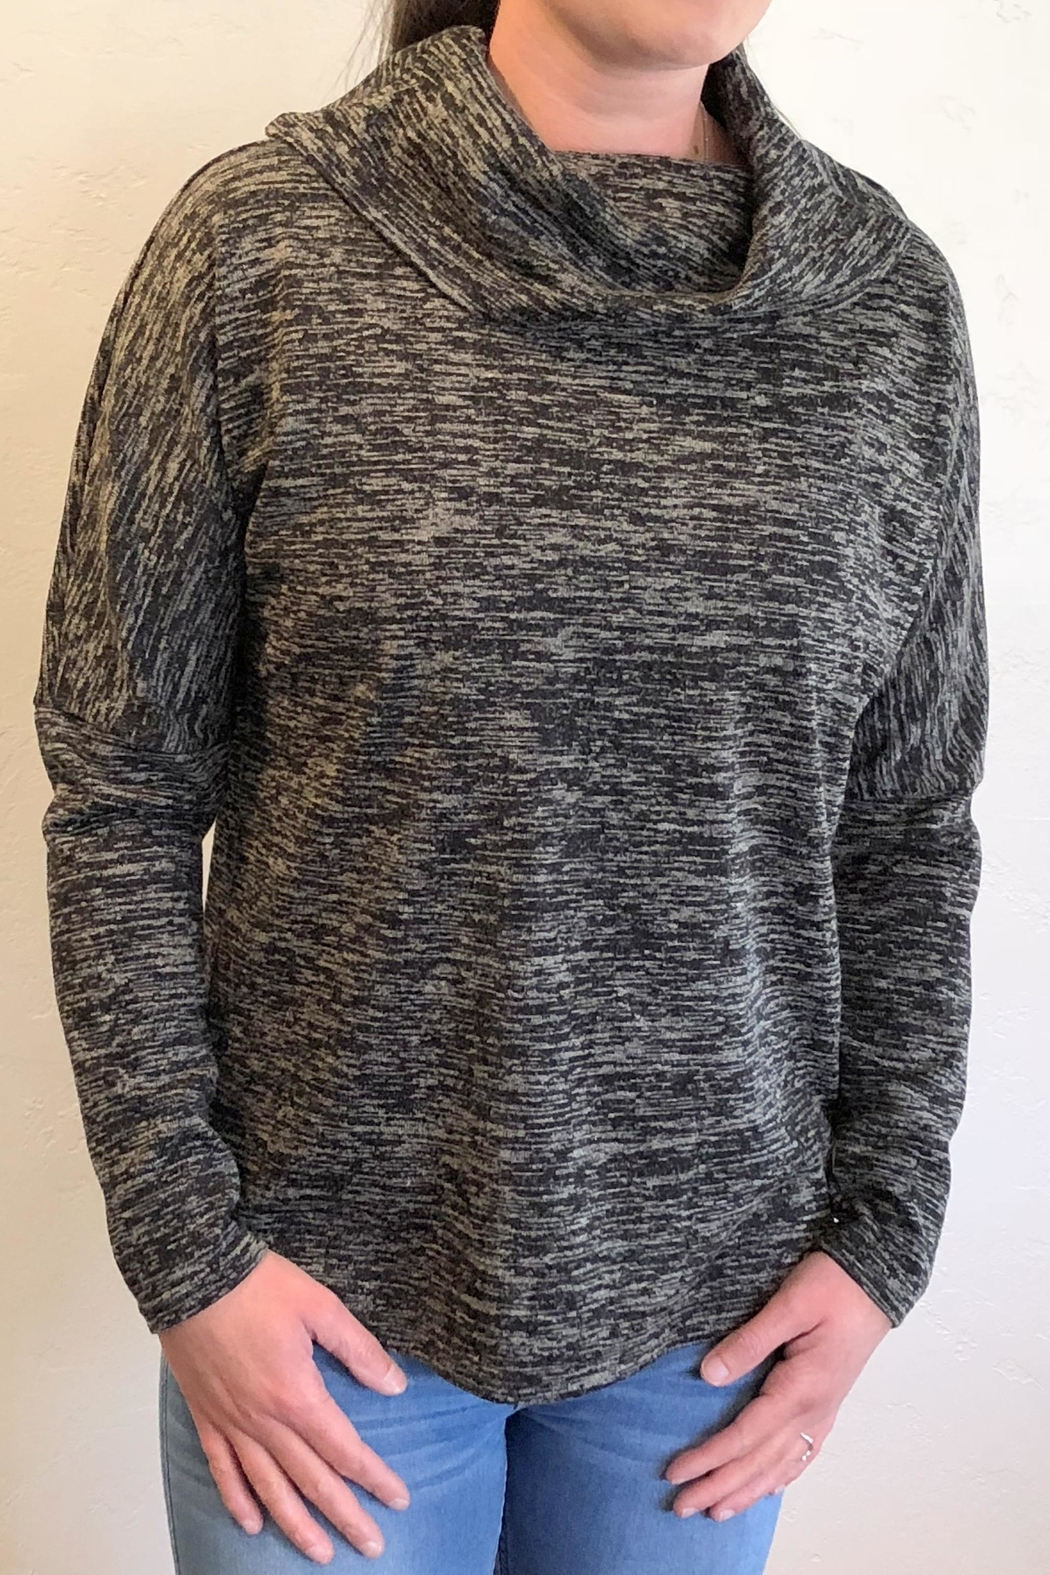 Charlie B. Lace-Up Cowl Sweater - Main Image